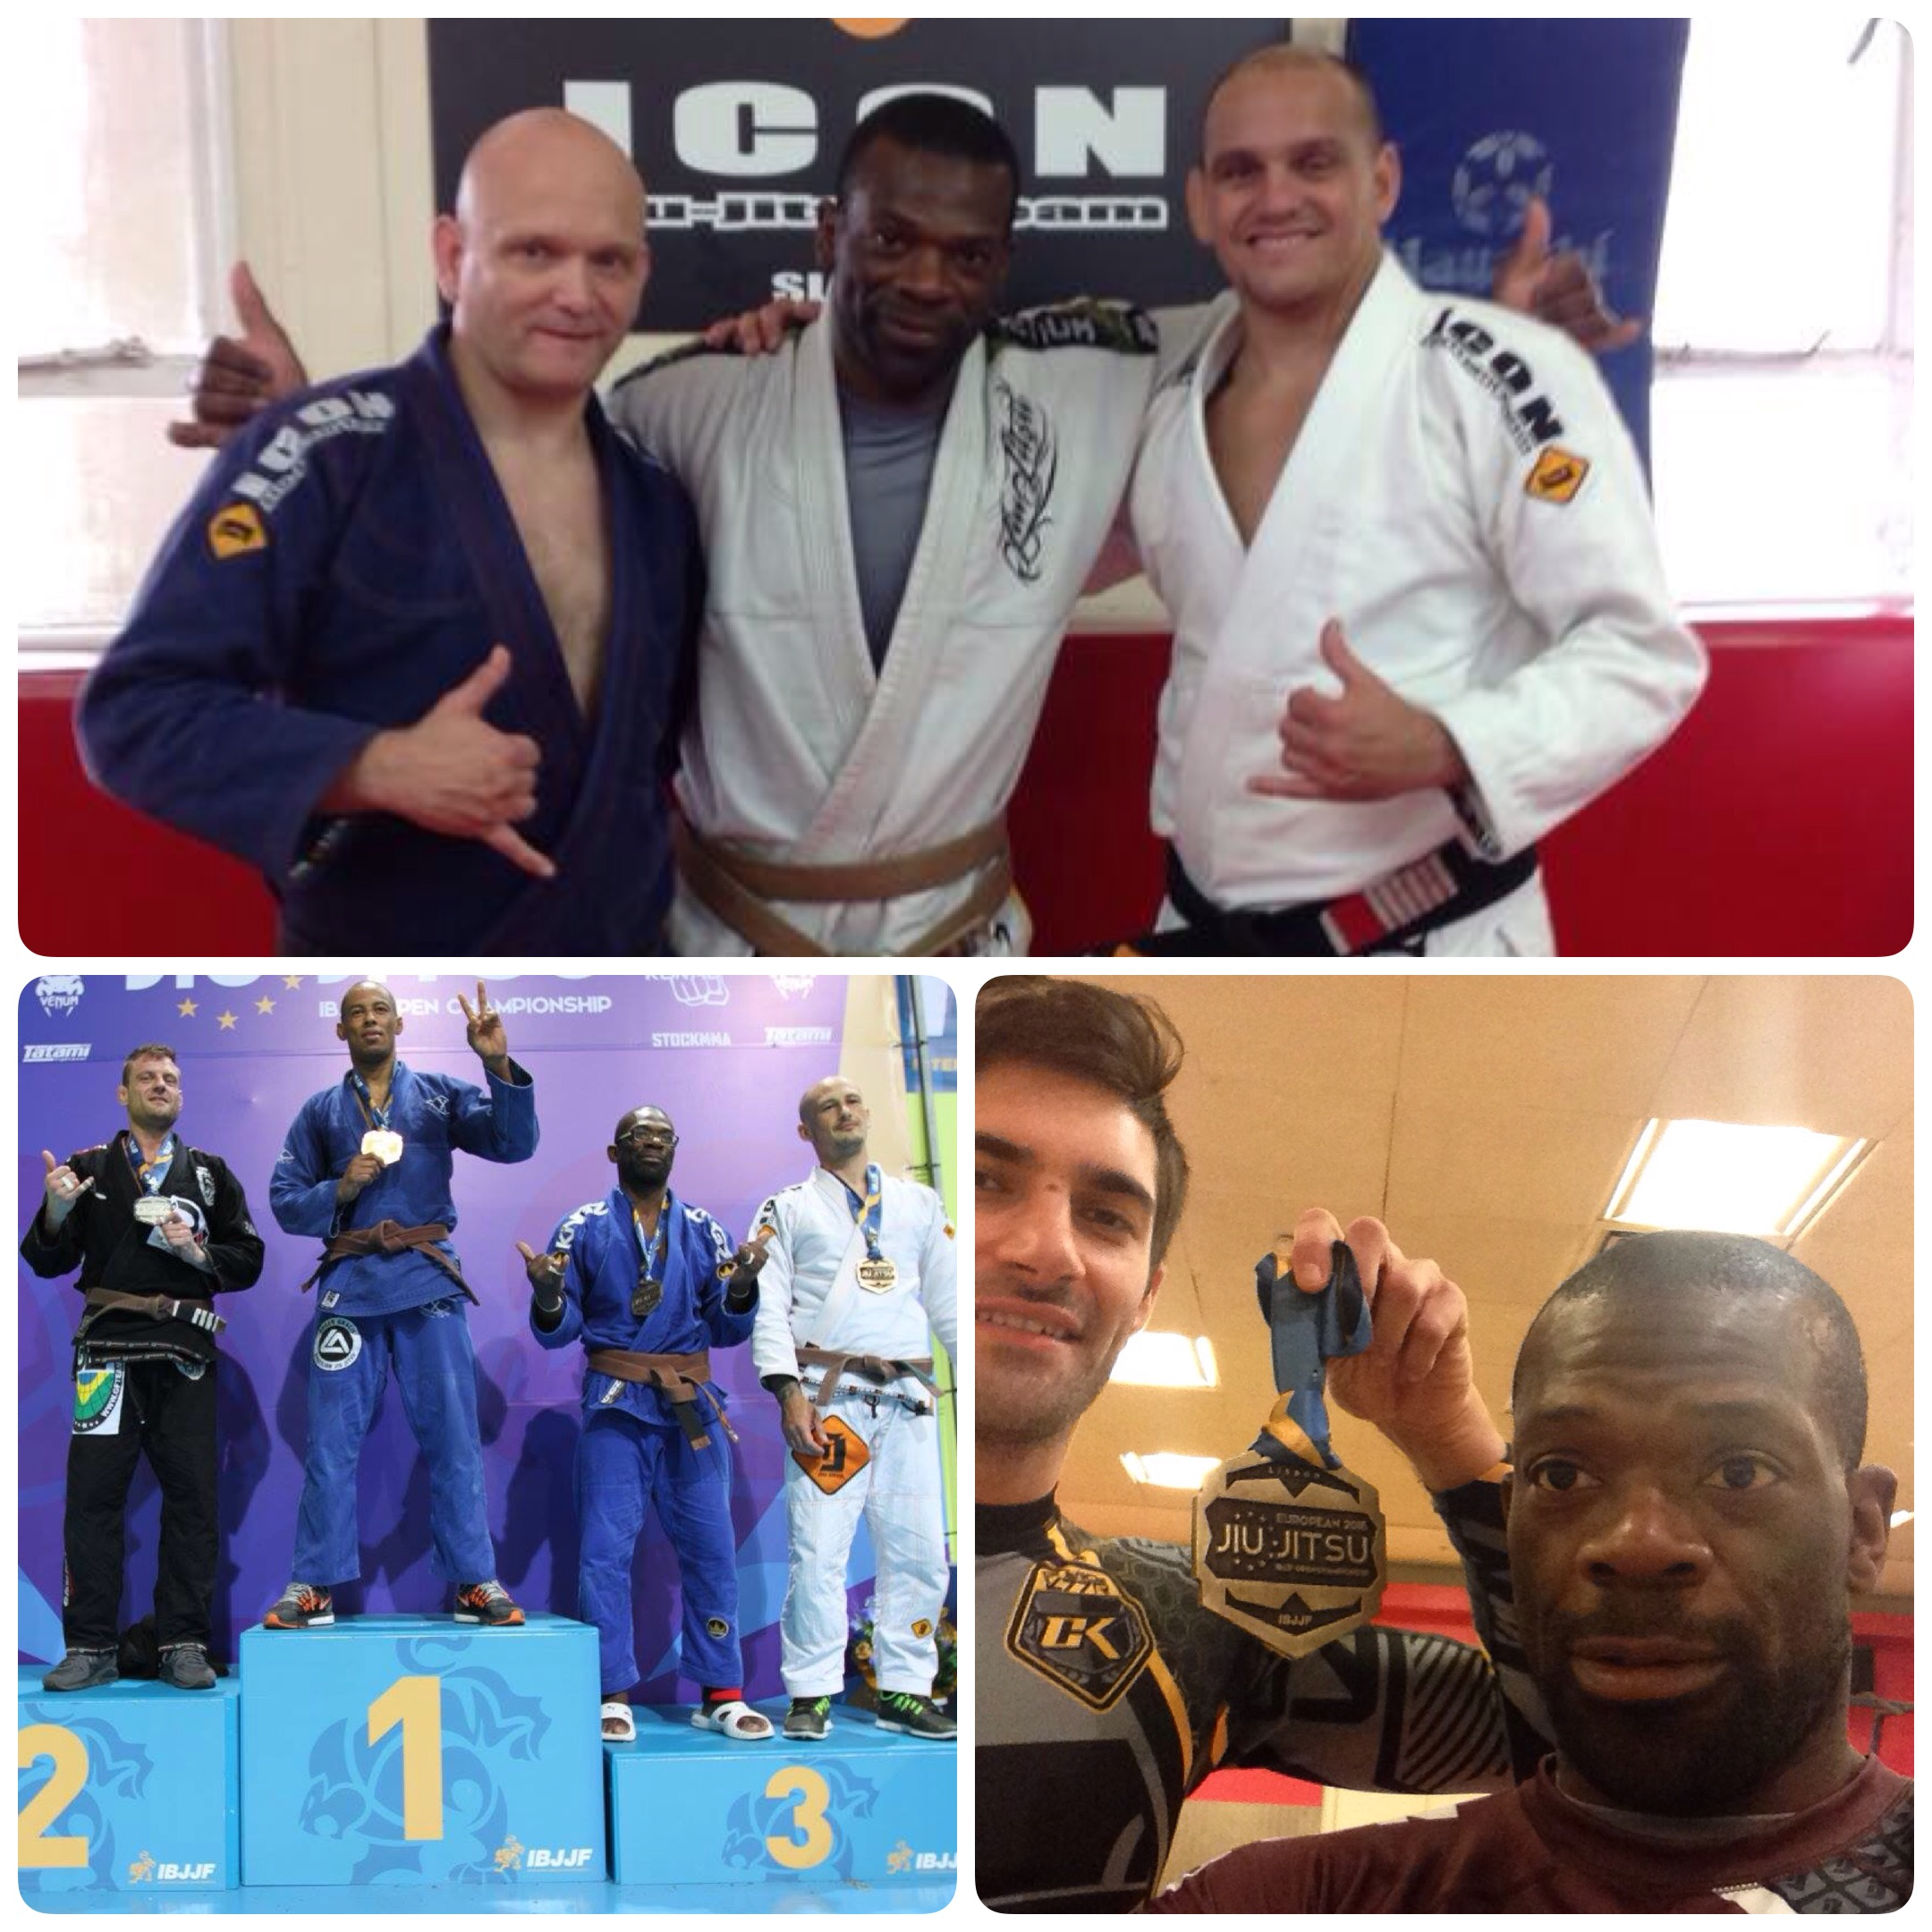 Coach Steve, Maestro ZeMarcello and Luke and Bronze at BJJ European Championship 3 months after becoming Brown Belt.